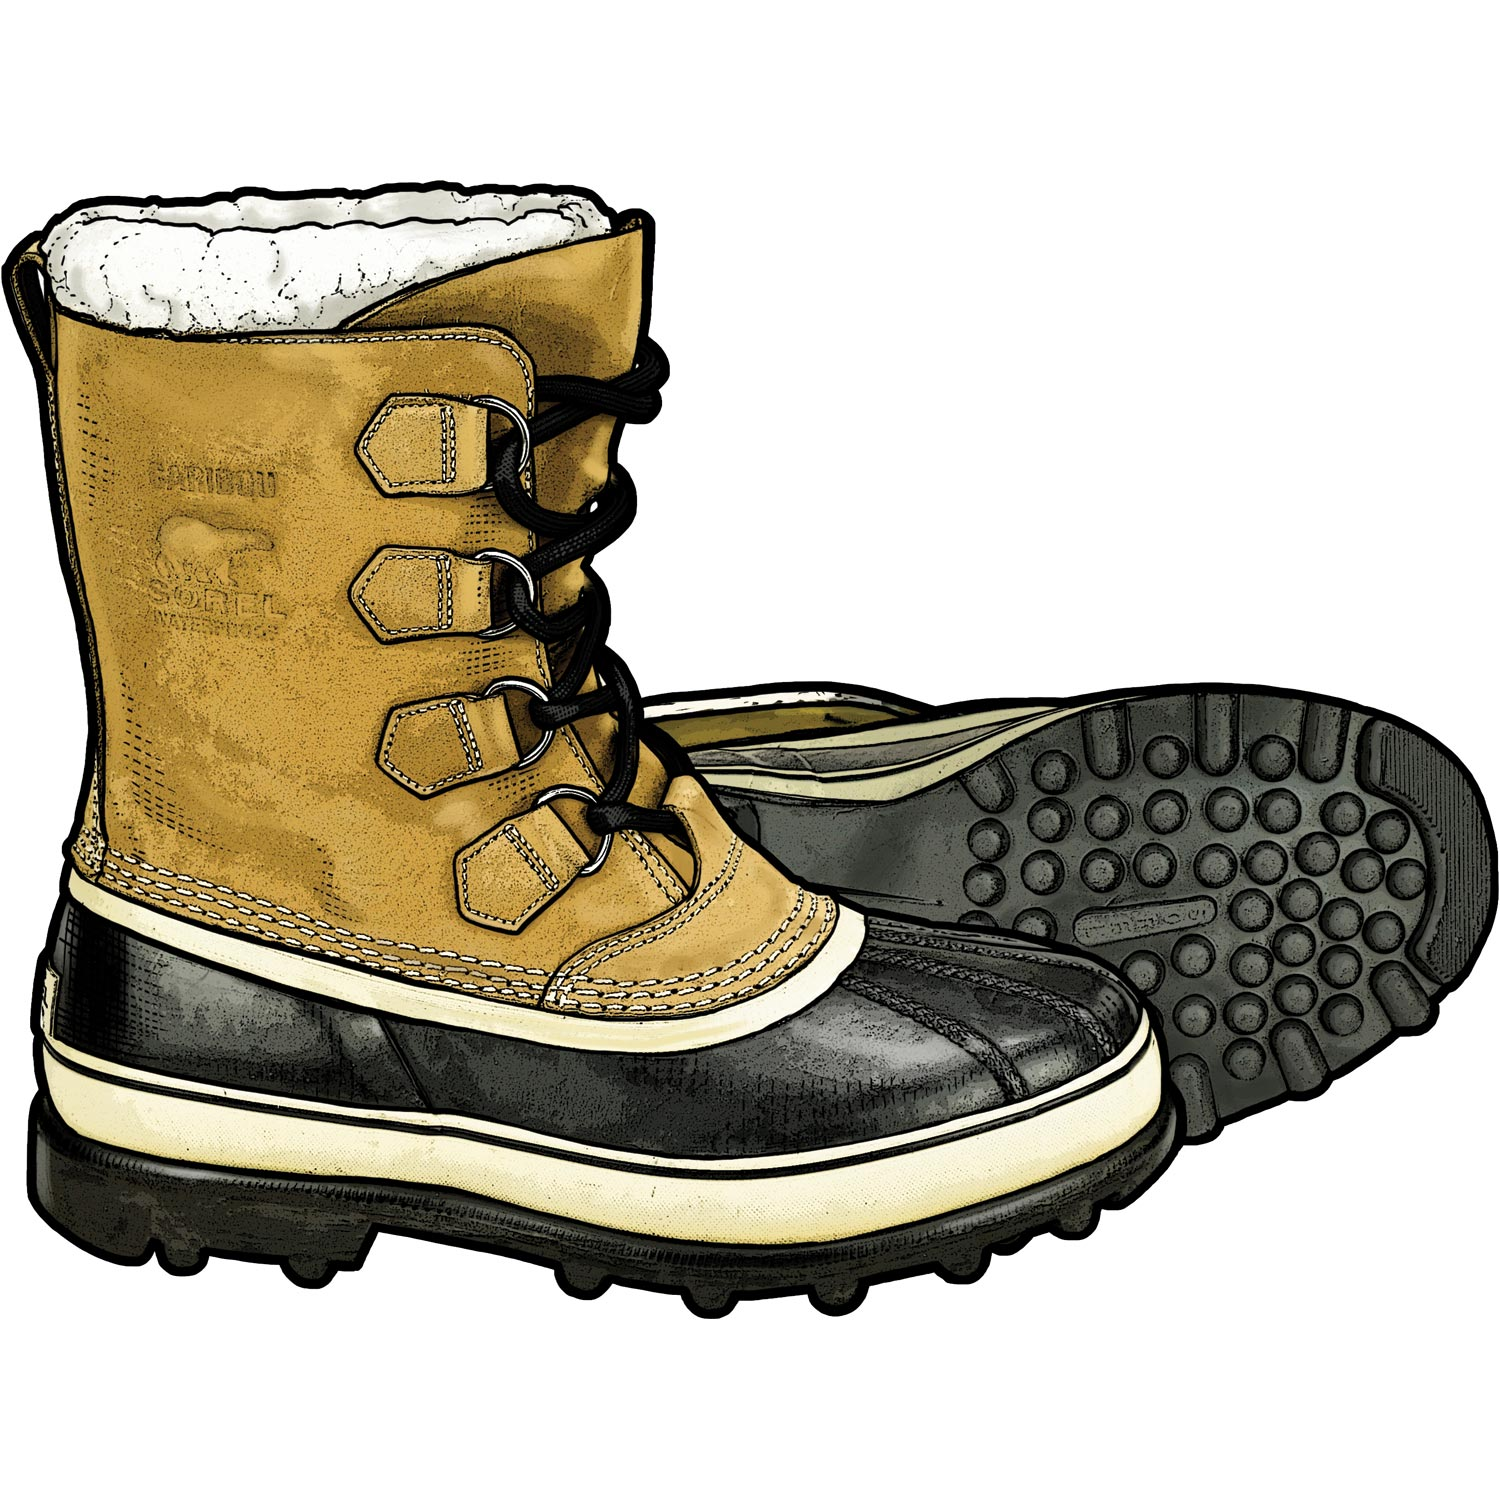 Snow boots clipart 2 » Clipart Station.